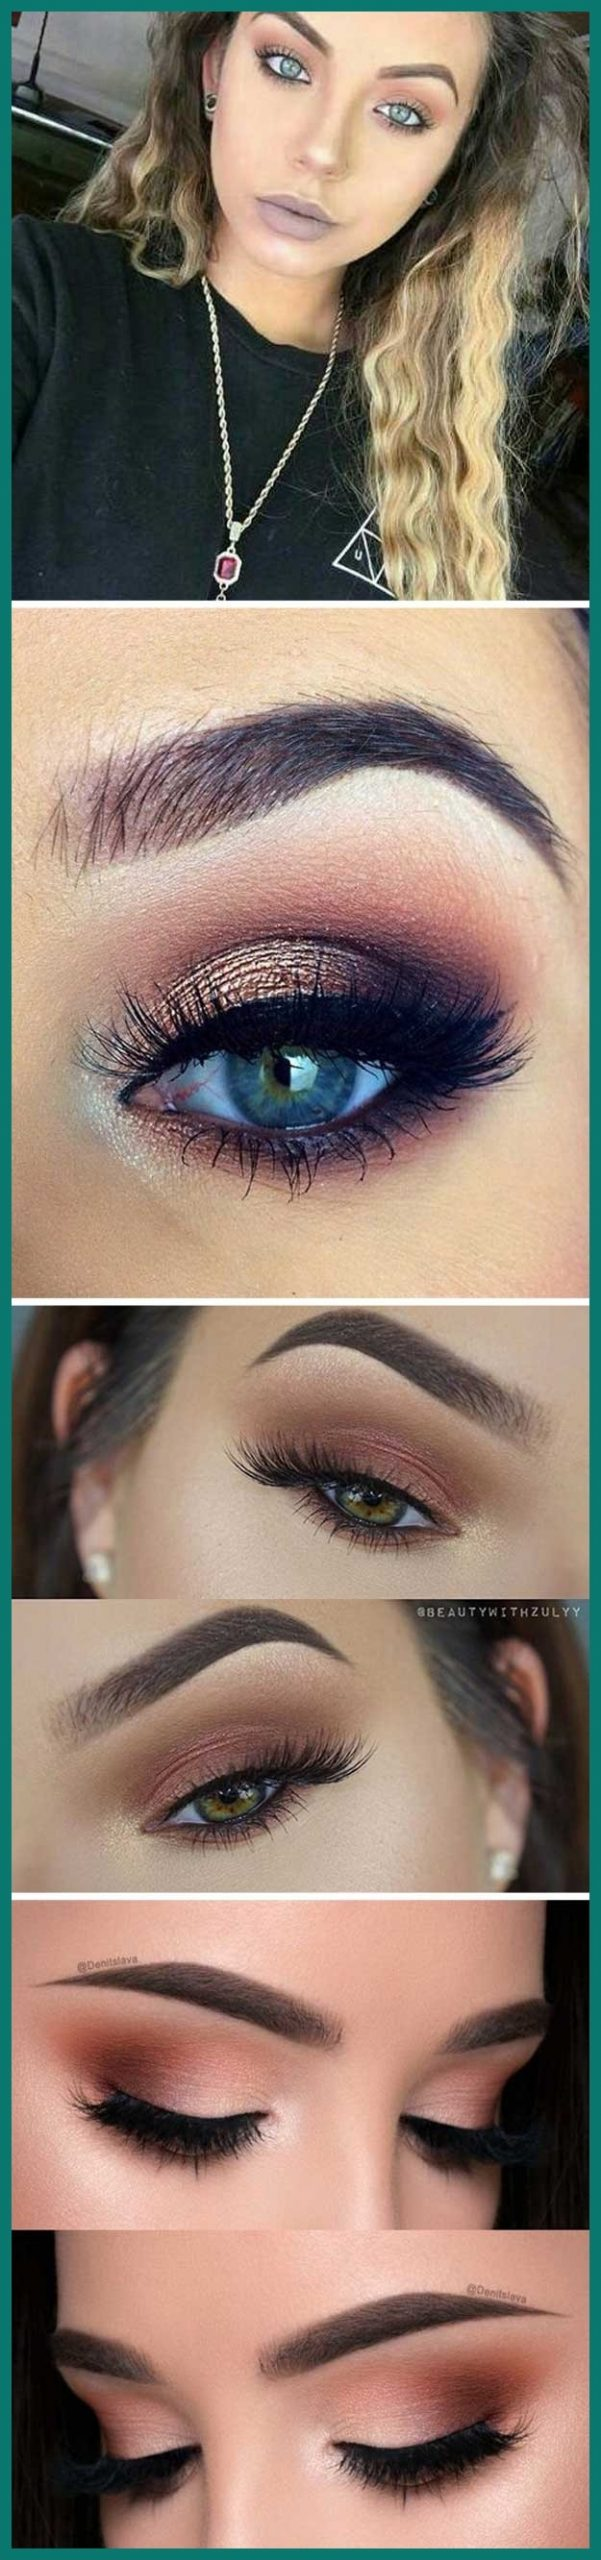 Best Eyeshadow Colors For Blue Eyes And Brown Hair 534226 within Best Makeup Colors Blue Eyes Brown Hair